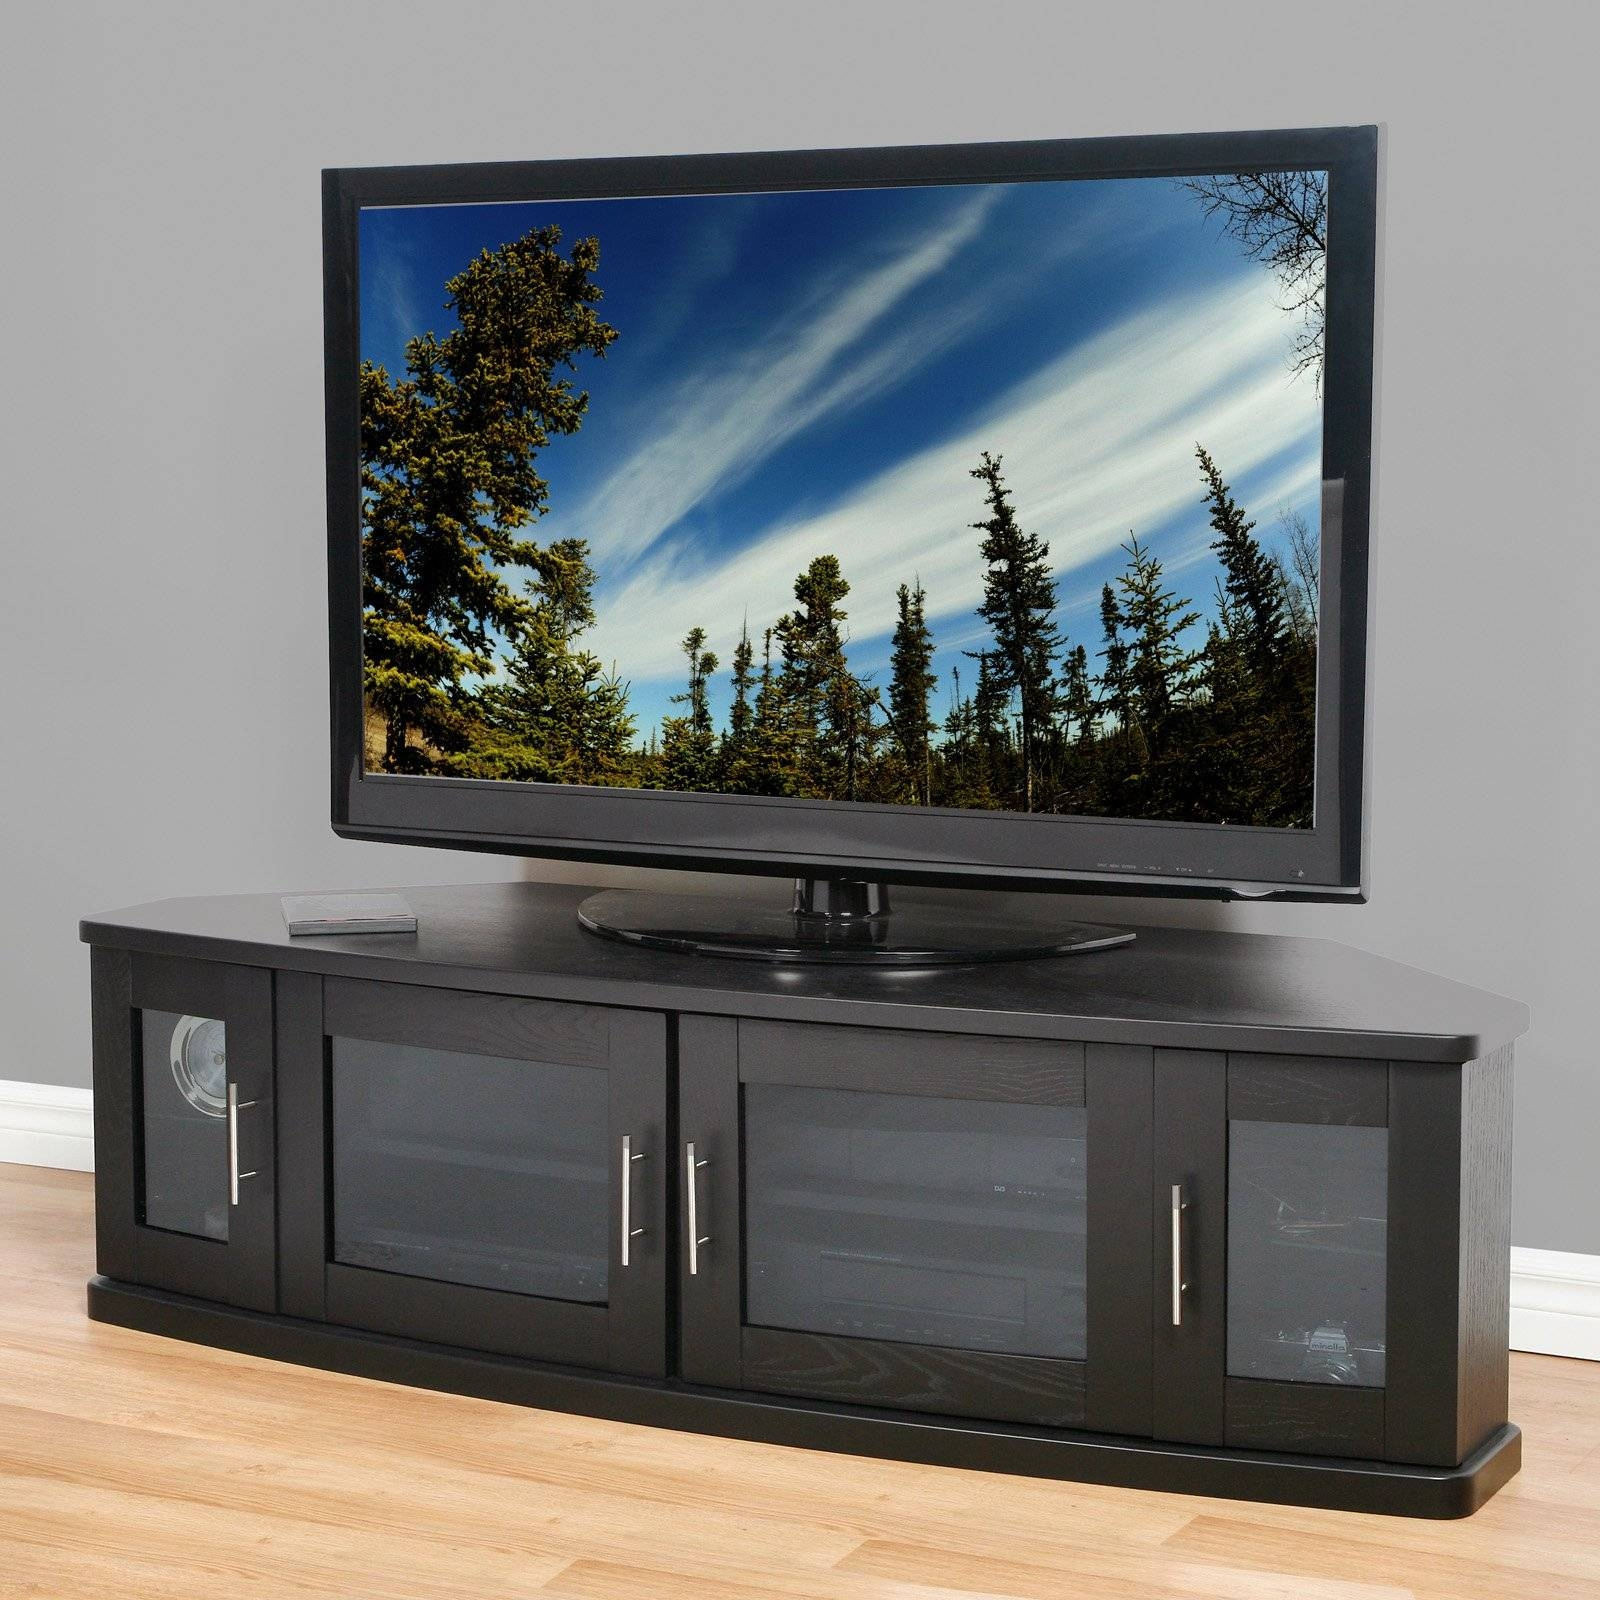 Modern Black Wooden Tv Stand With Frosted Glass Doors Of Dazzling regarding Glass Tv Cabinets With Doors (Image 13 of 15)